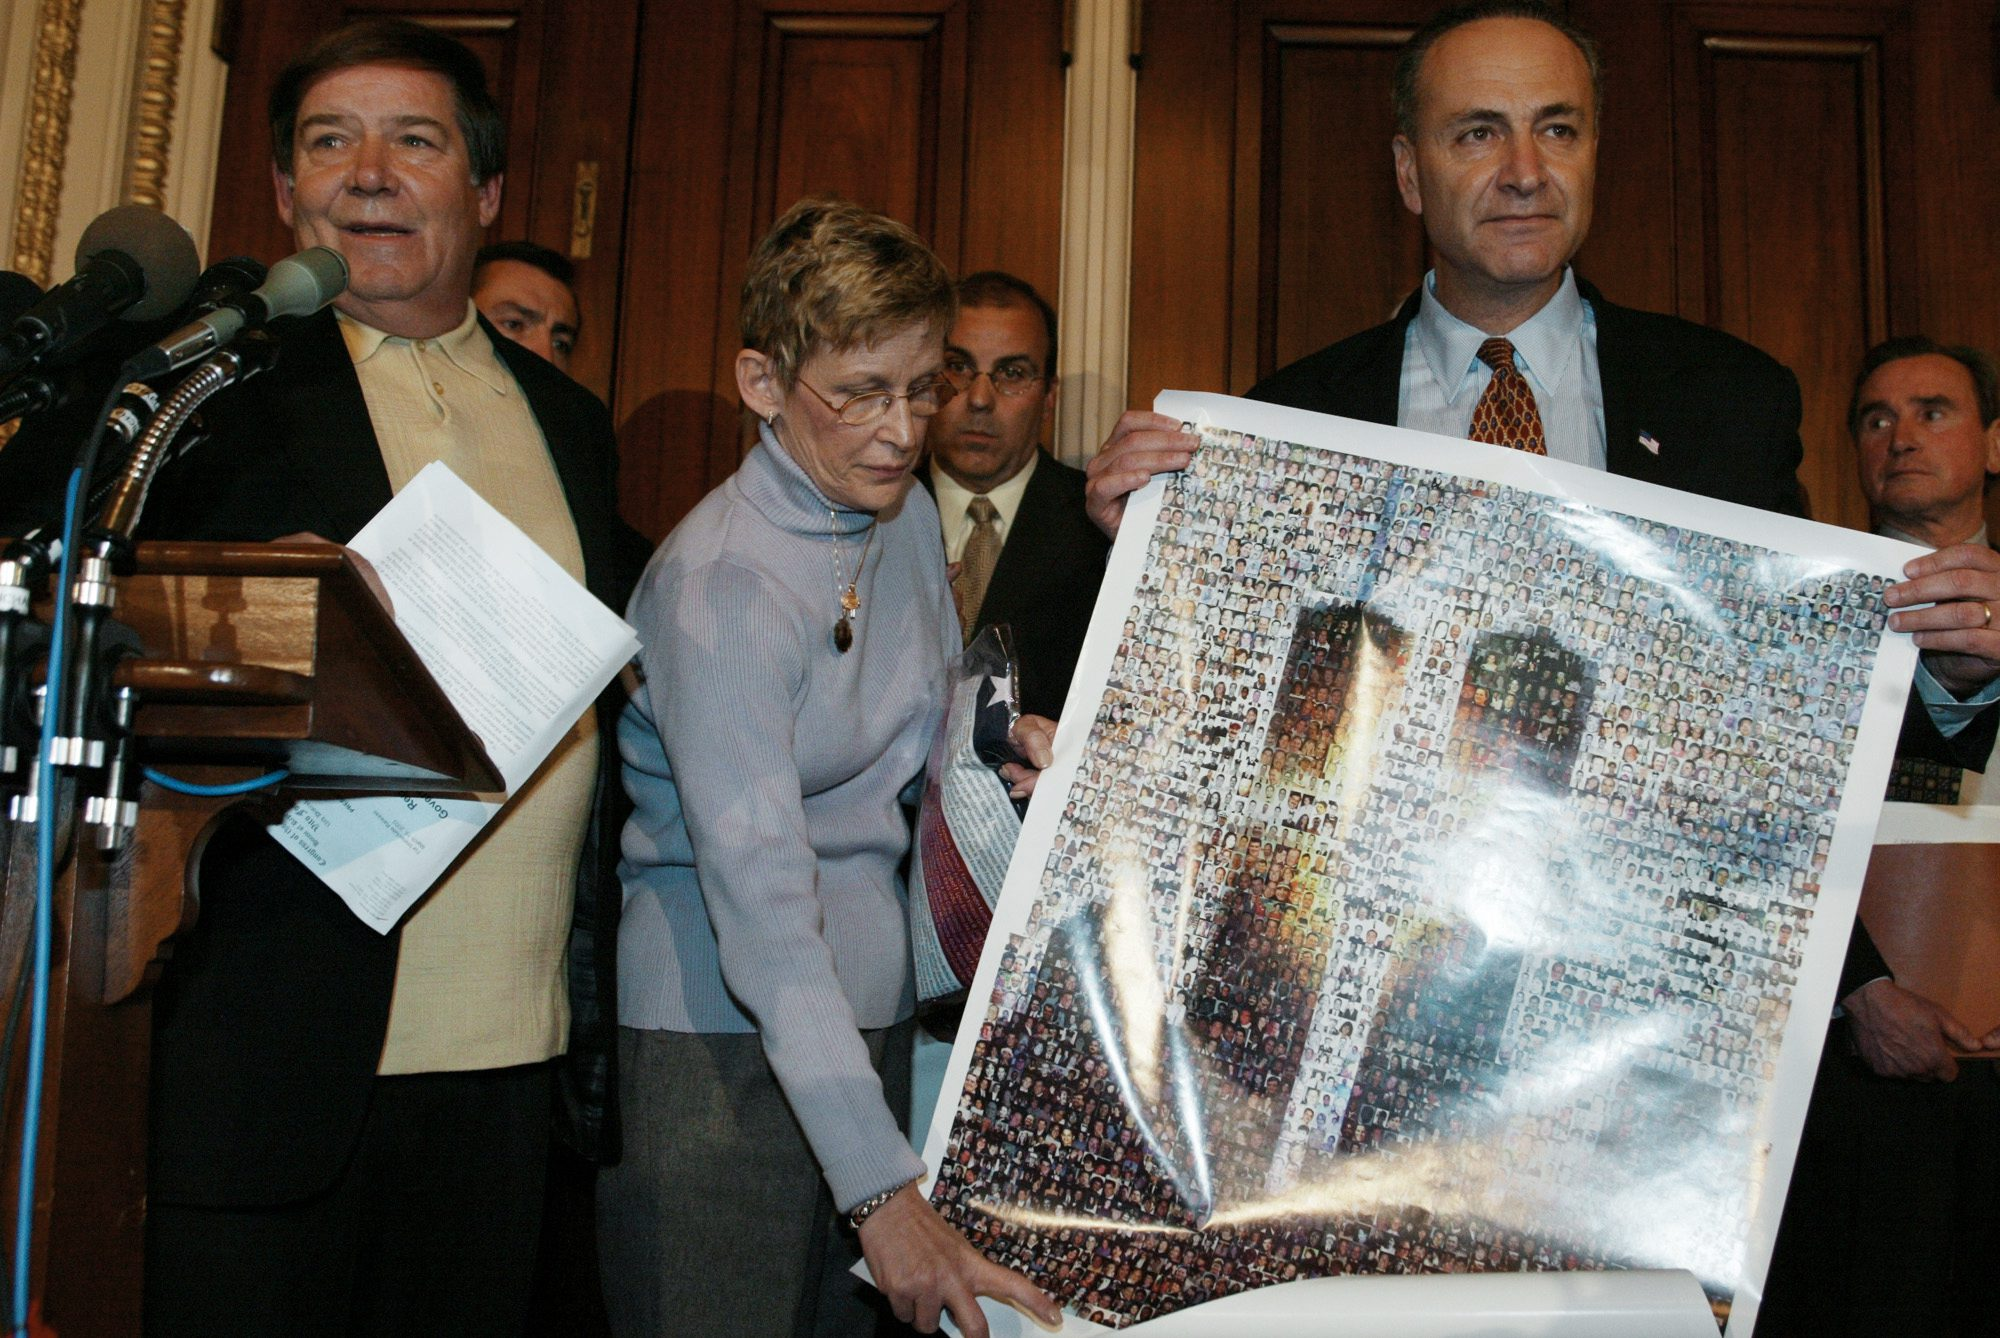 Bill Doyle, left, and Joan Molinaro, center, both from Staten Island, N.Y., parents of victims, present a poster of the World Trade Center bearing photographs of all the victims of the Sept. 11 terrorist attacks to Senator Charles Schumer, D-N.Y., during a news conference on terrorist financing on Capitol Hill Wednesday, March 19, 2003. Schumer said that new documents in possession by the Justice Department linking some of Saudi Arabia's most influential families to Al Qaeda should be made available tohelp victims' families prosecute those responsible for the Sept. 11 tragedy. Man rear center is John D'Amato, and rear right is Ronald Motley, attorney for the Sept. 11 families of victims. (AP Photo/Charles Dharapak)